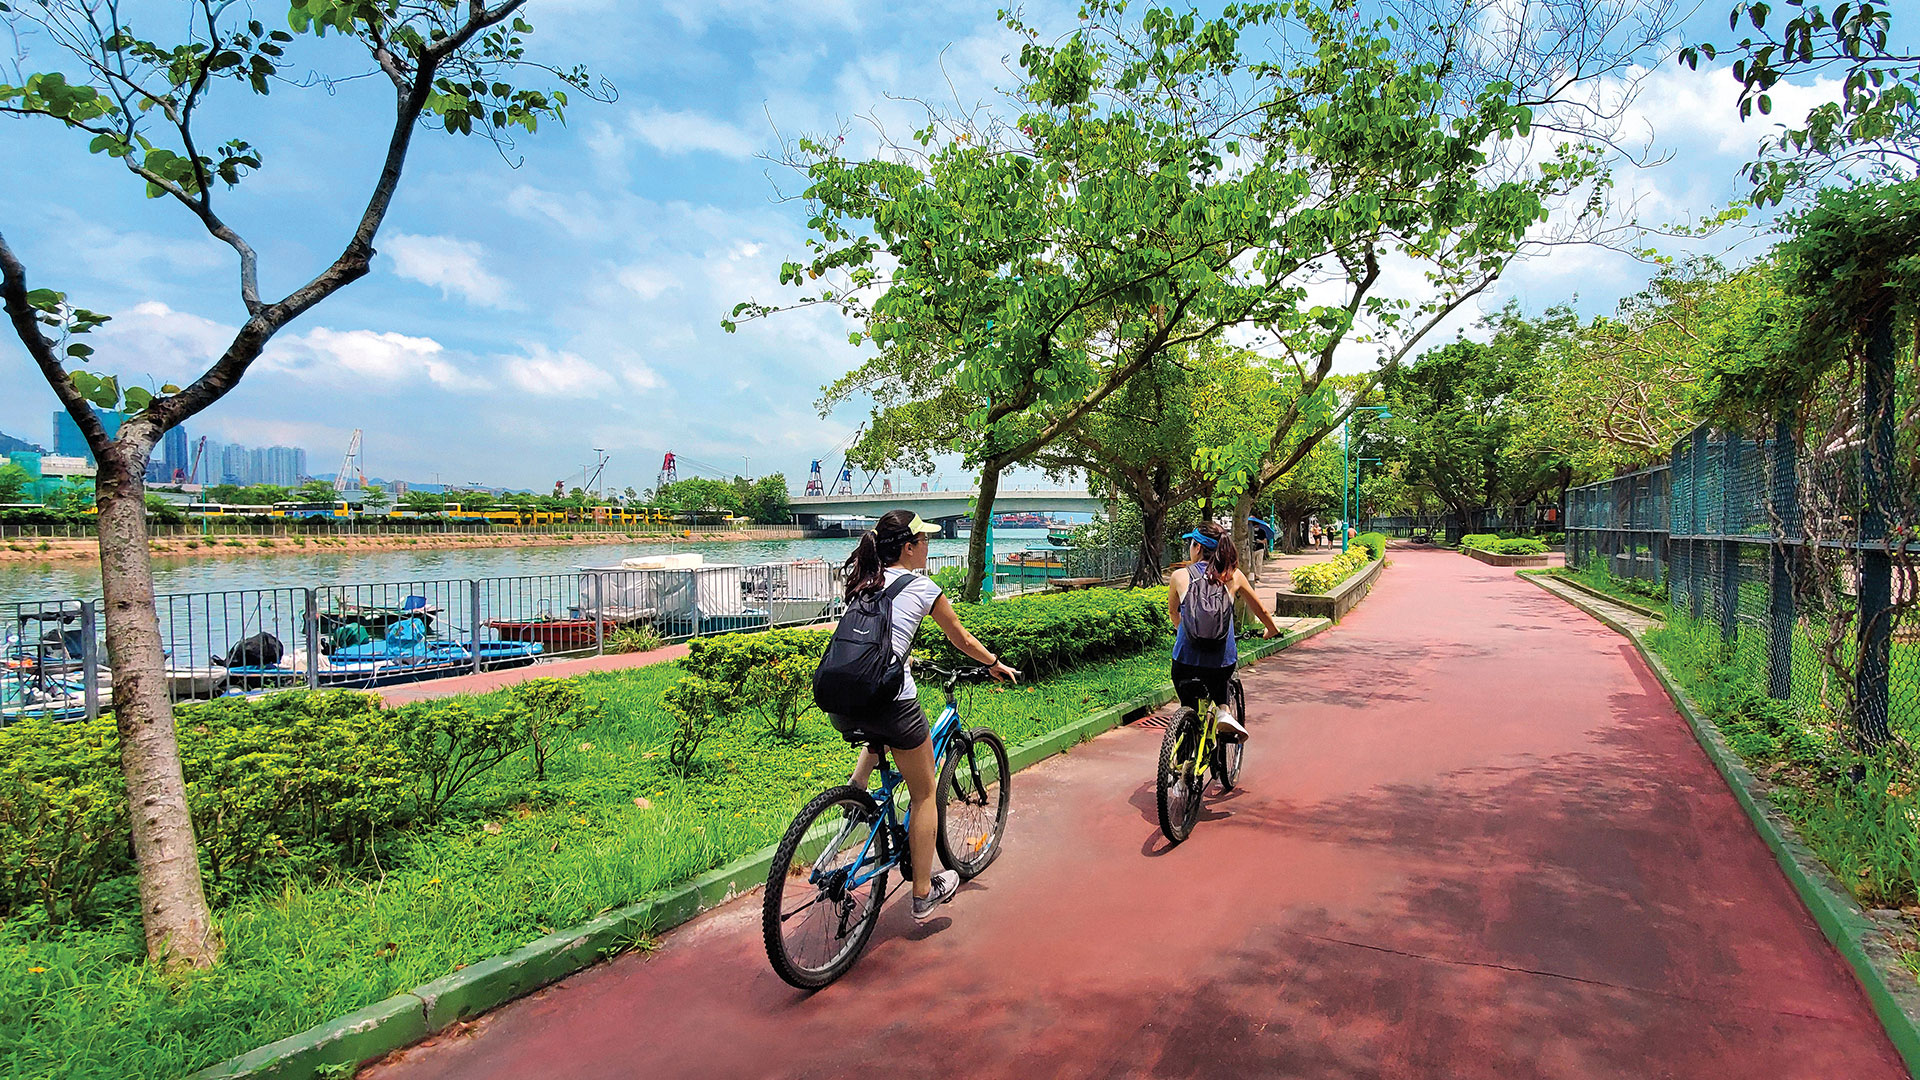 Yuen Long to Butterfly Beach: take a leisurely bike ride through cultural and recreation sites